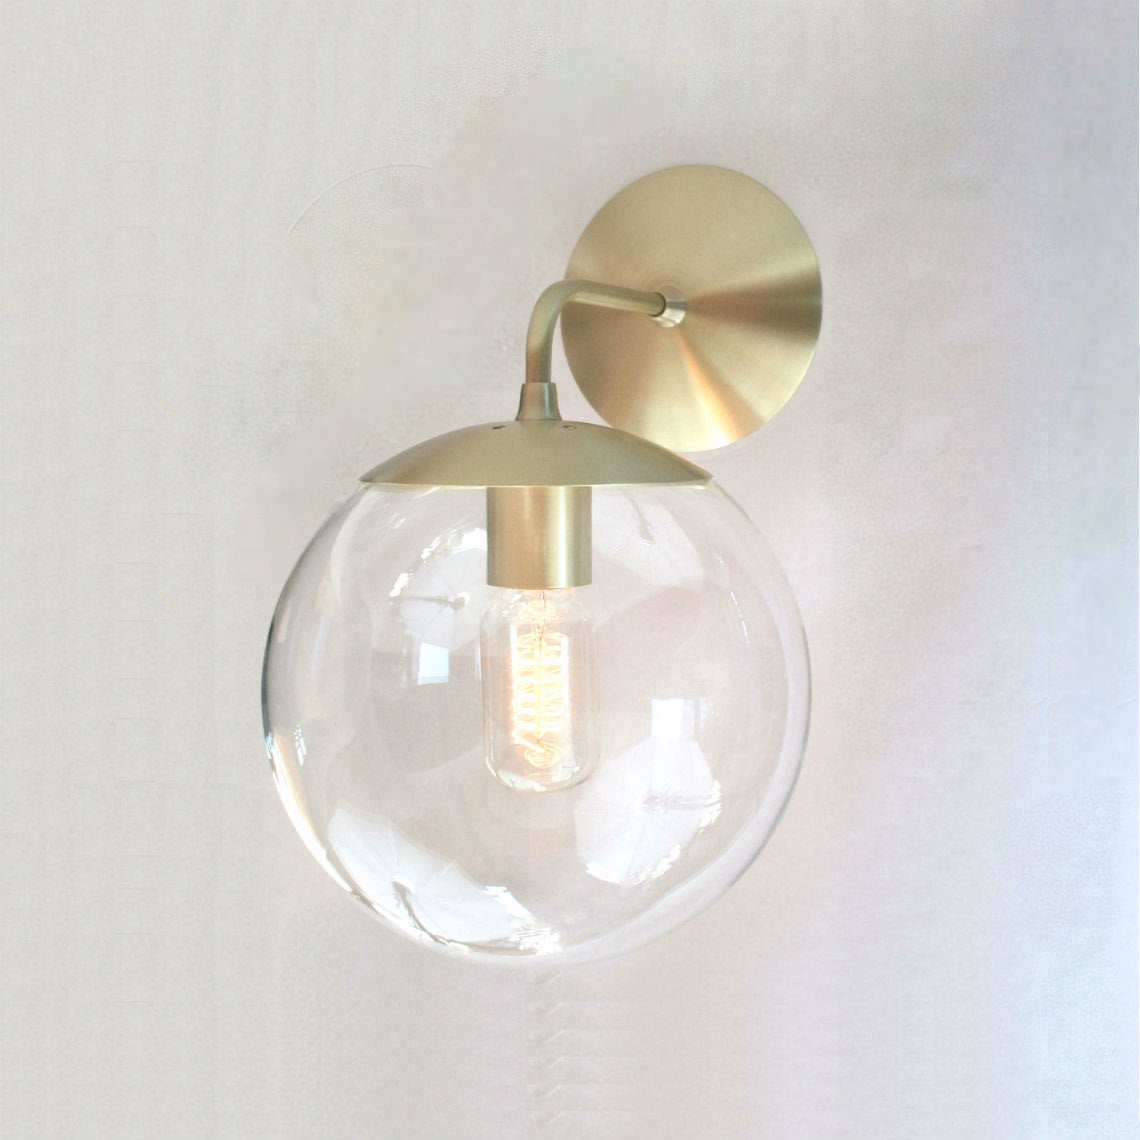 Orbiter 8 wall sconce sanctum lighting image of adapted for intl use orbiter 8 wall sconce mid century aloadofball Choice Image